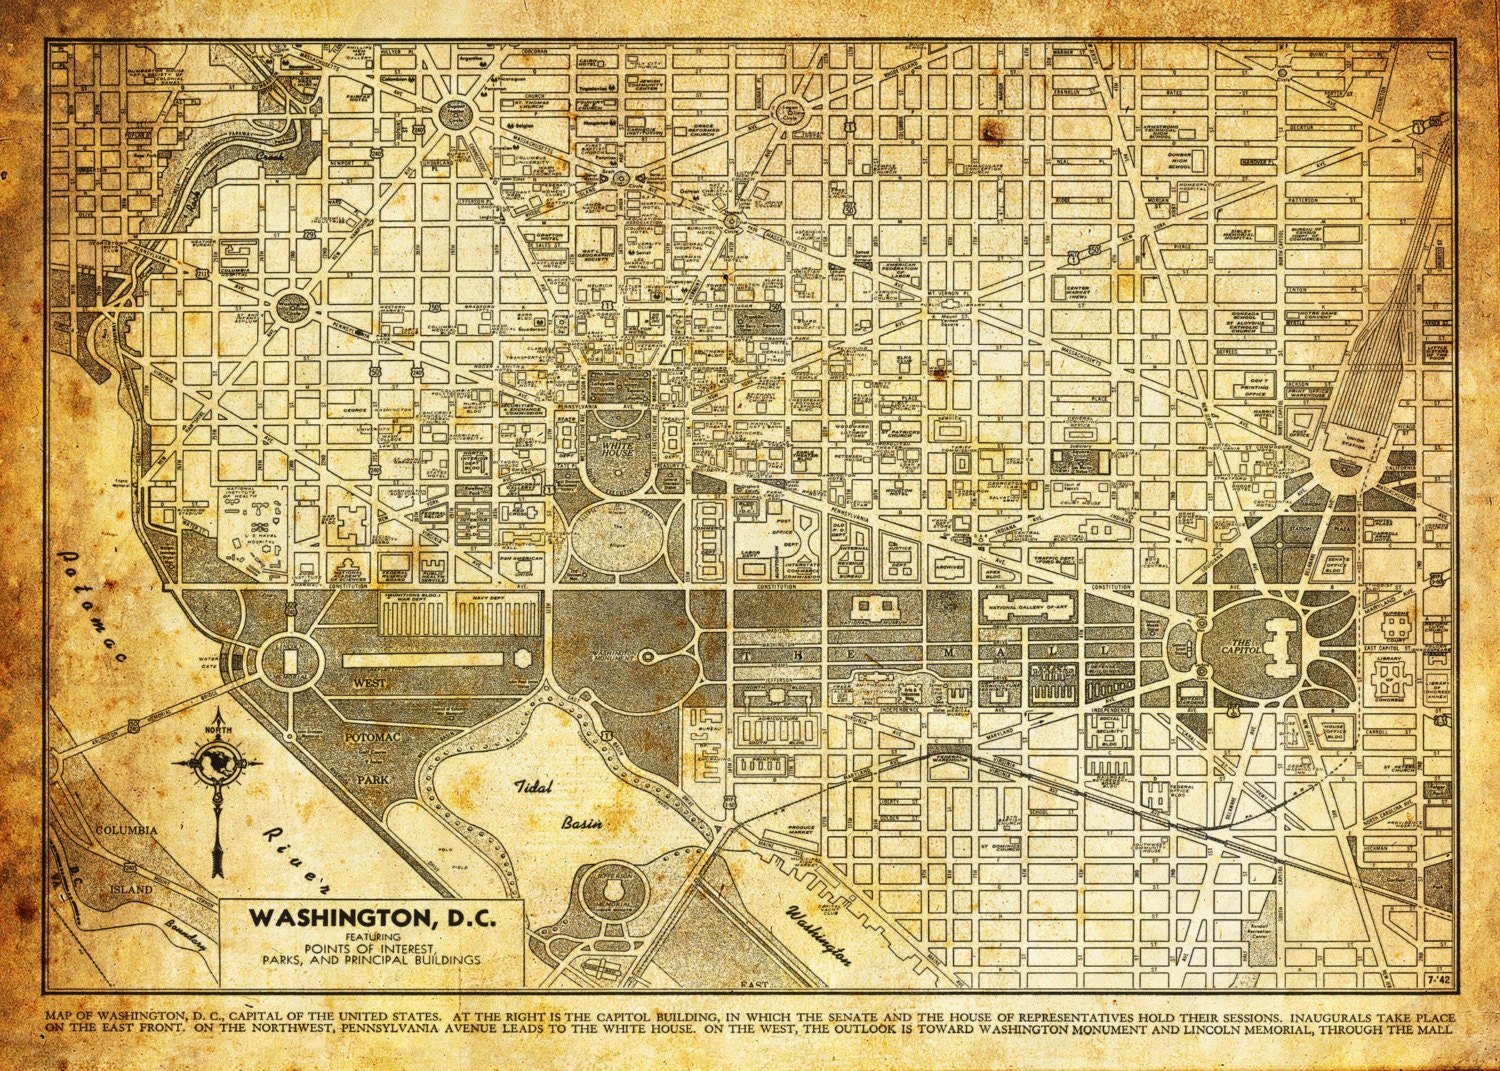 Washington DC Map Street Map Vintage Sepia Grunge Print - Washington dc capitol map